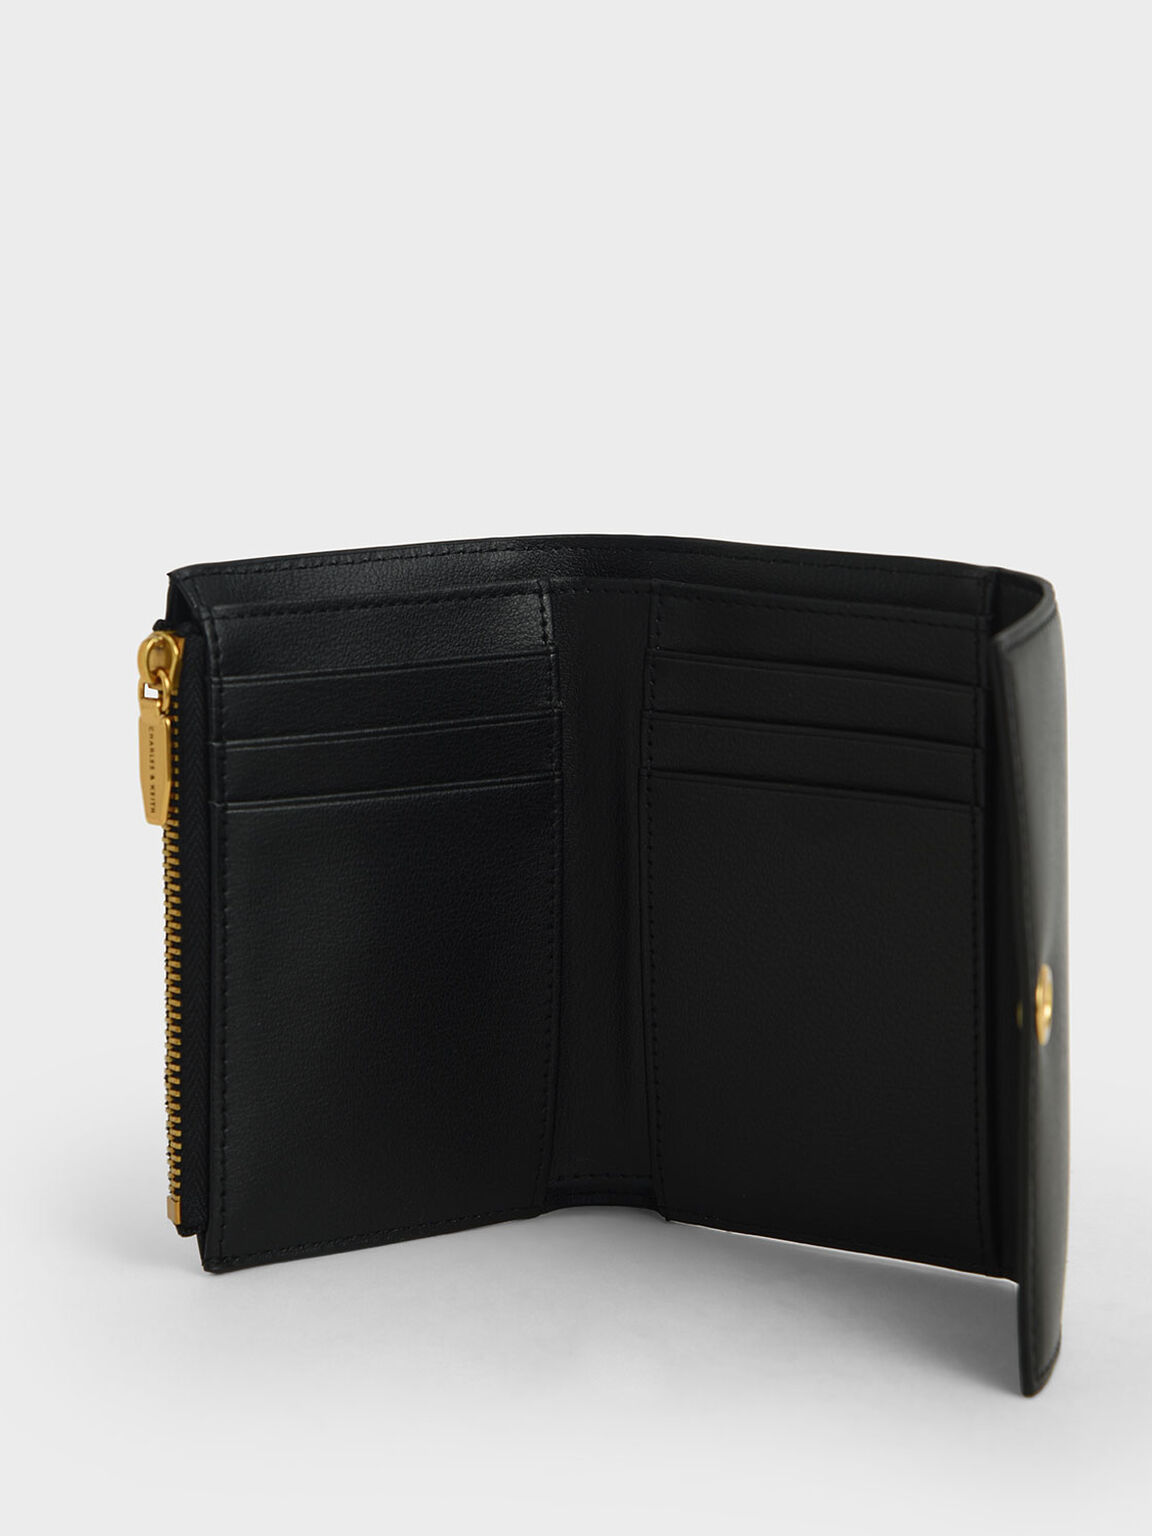 Turn-Lock Fold Wallet, Black, hi-res